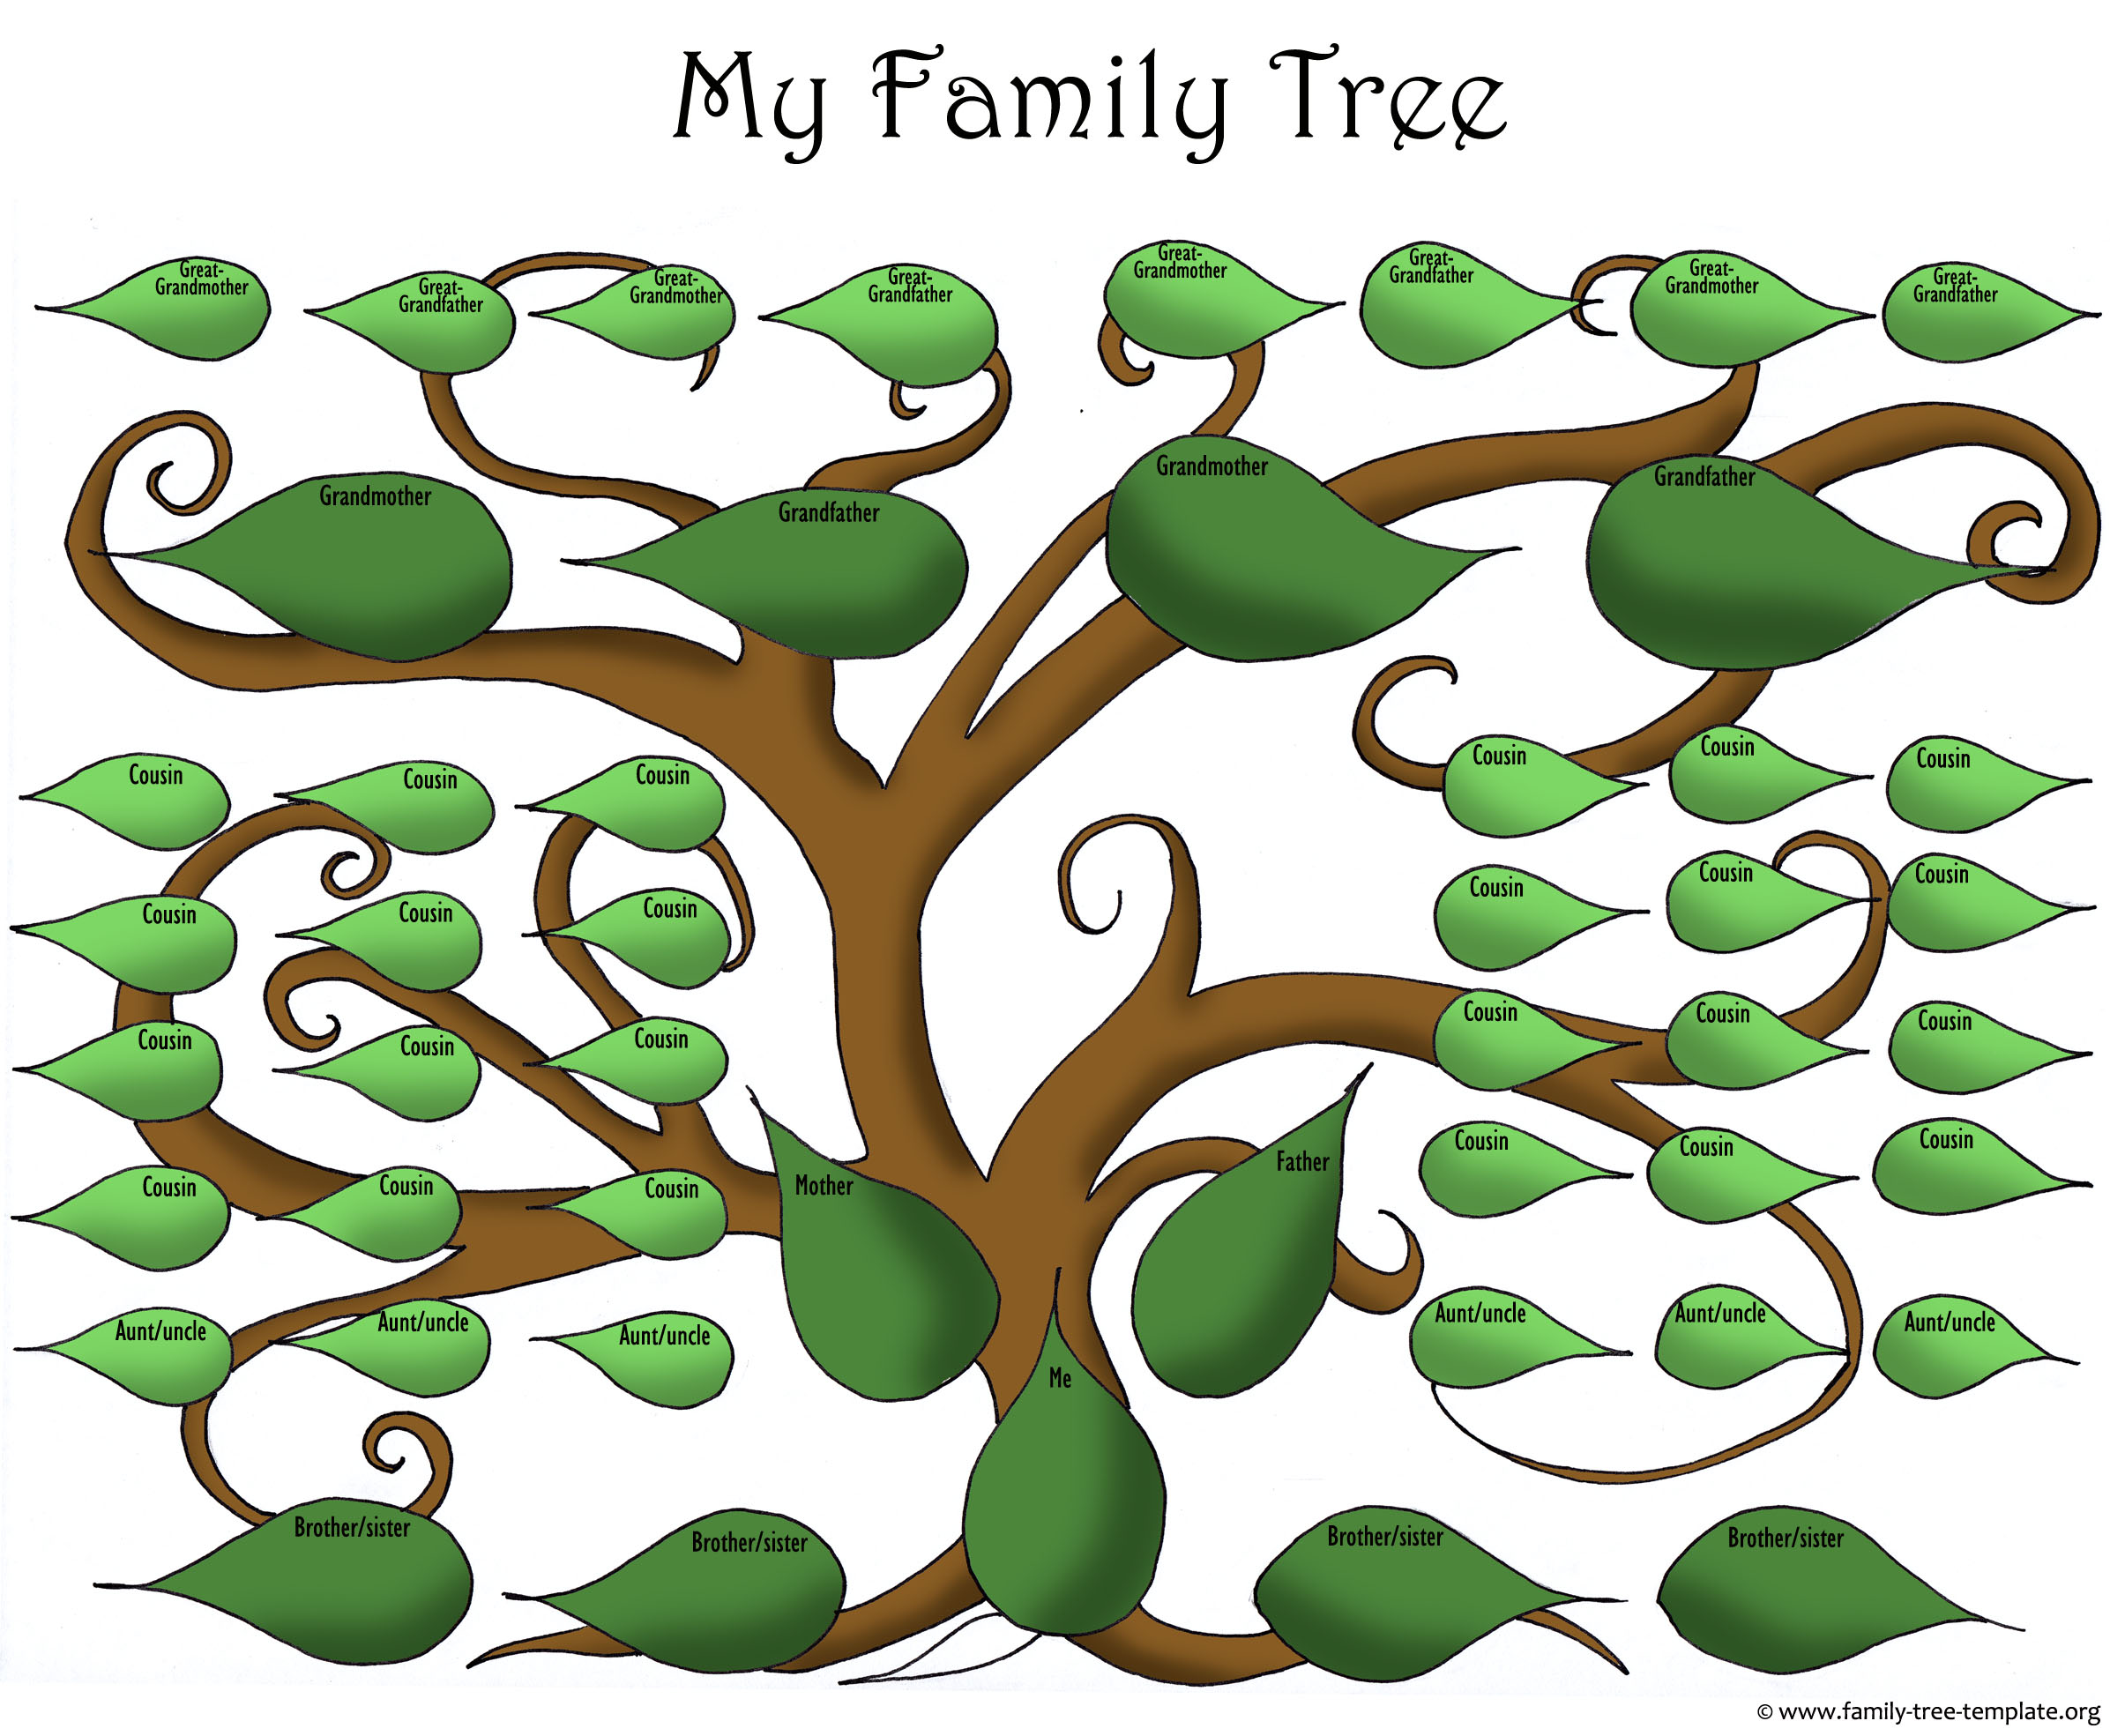 templates for family tree charts - a printable blank family tree to make your kids genealogy